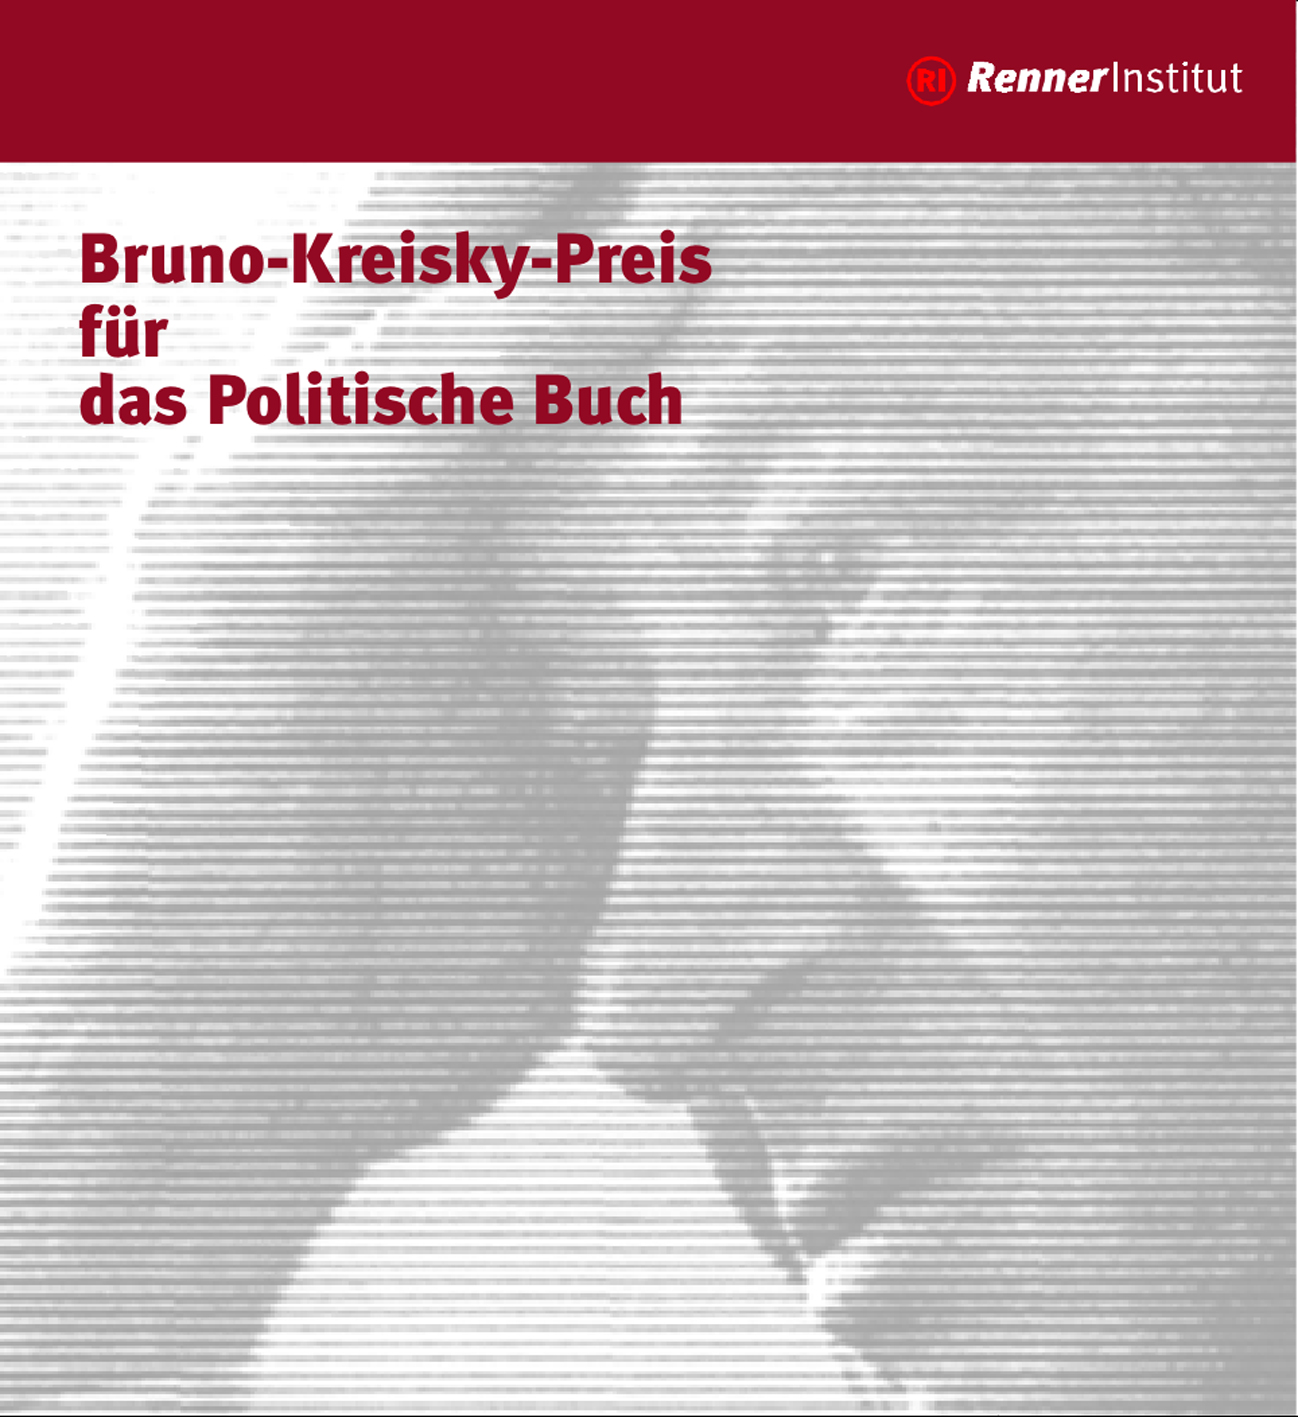 Design for the Bruno-Kreisky-Preis, Renner-Institut, Academy of the Austrian Social Democratic Party